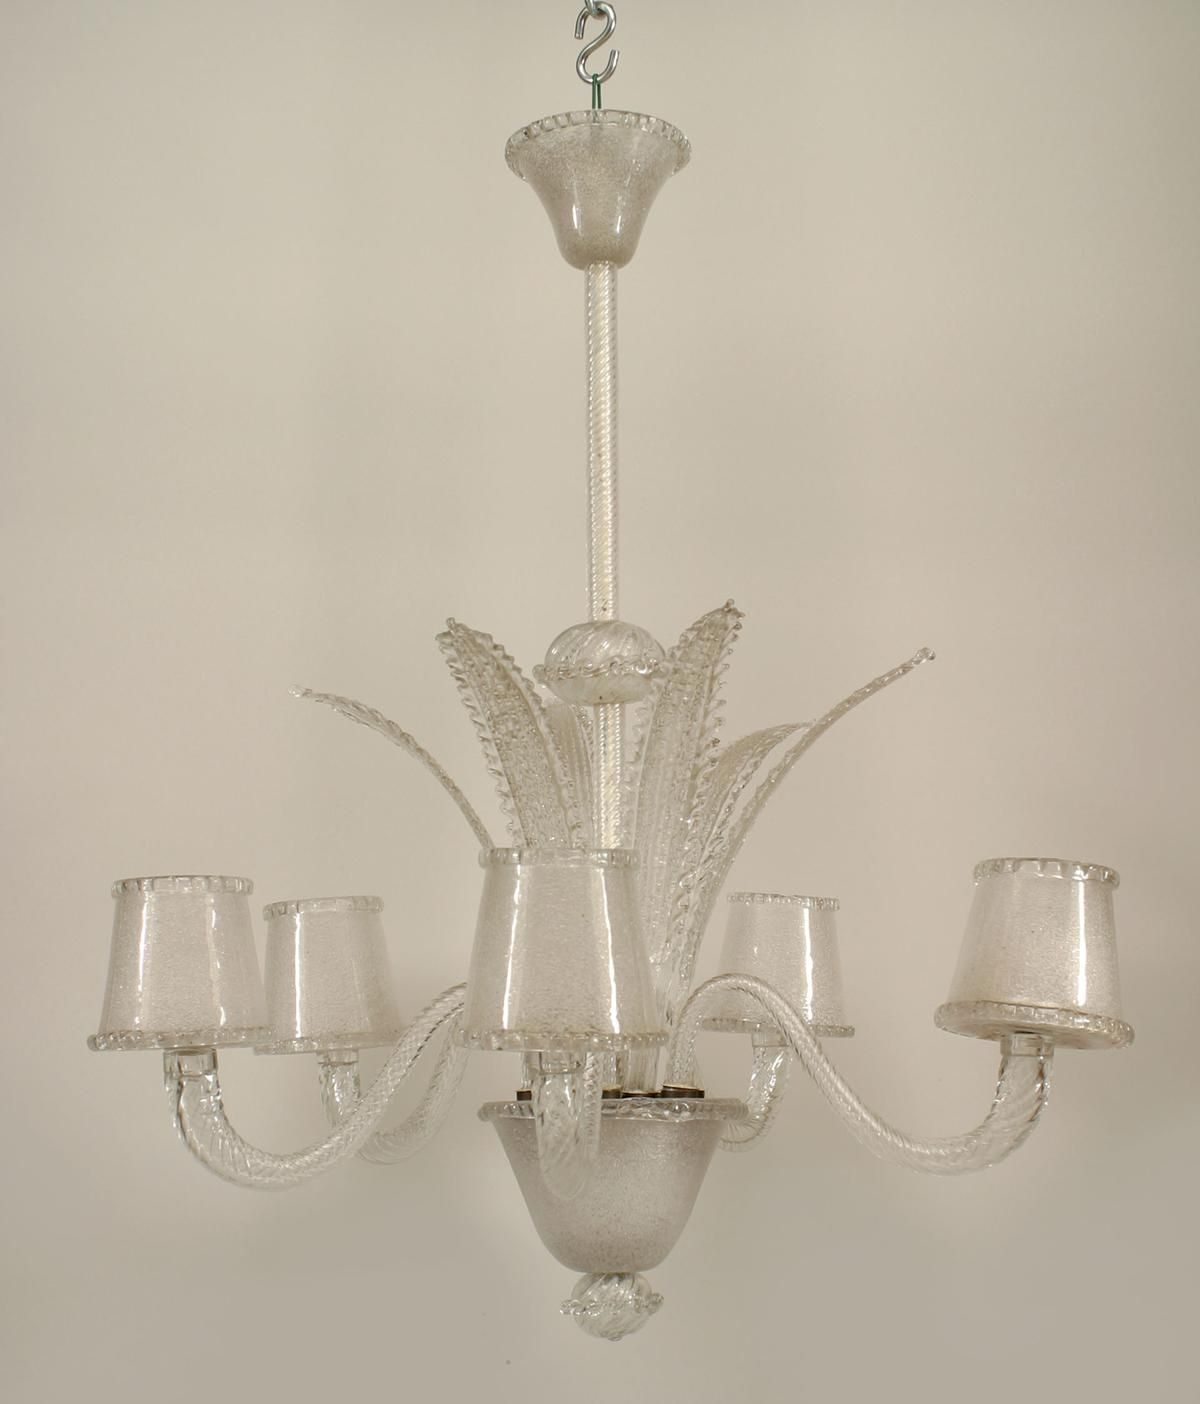 Art Moderne 1940s Italian Lighting Chandelier Glass Murano Glass